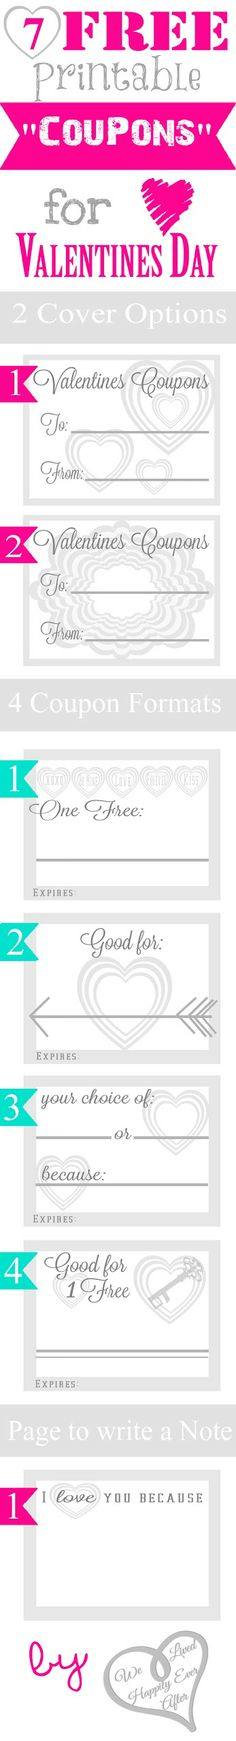 """We Lived Happily Ever After: 7 Free Printable """"Coupons"""" for Valentine's Day"""